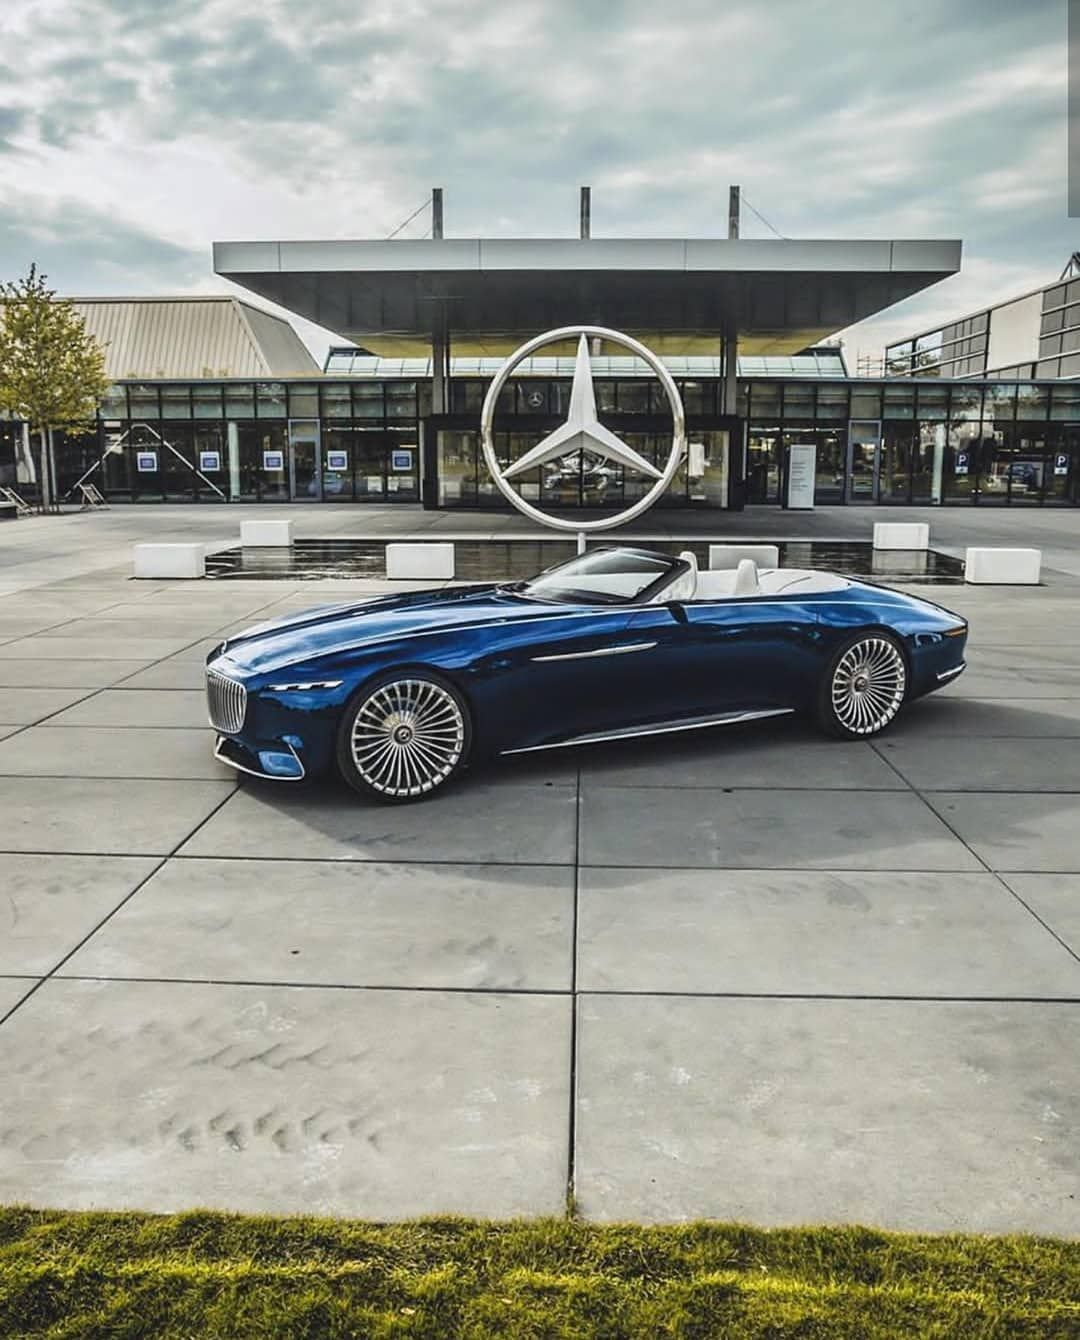 "Arab | Luxury | Lifestyle on Instagram: ""Maybach Vision 6 Cabrio? @fredericseemann #arabsupertoys"""